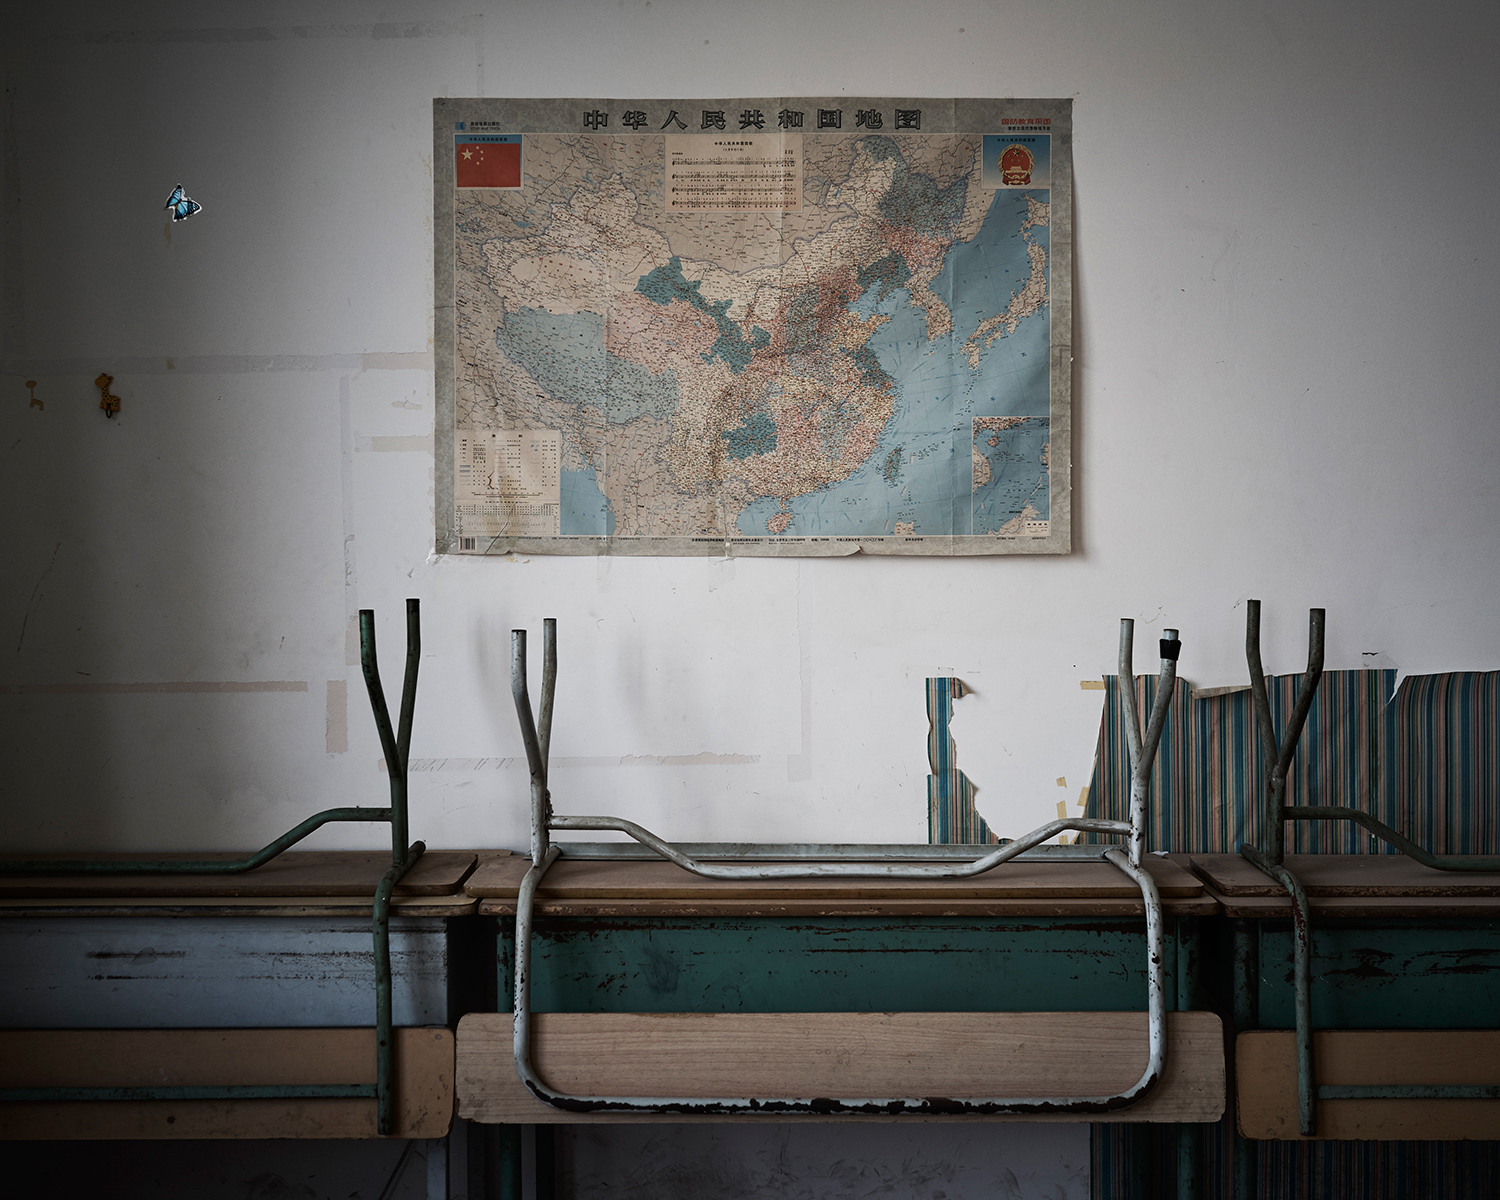 A map of the People's Republic of China hangs on the wall of an abandoned classroom in Nanguan Mosque's Arabic school, June, 2016.